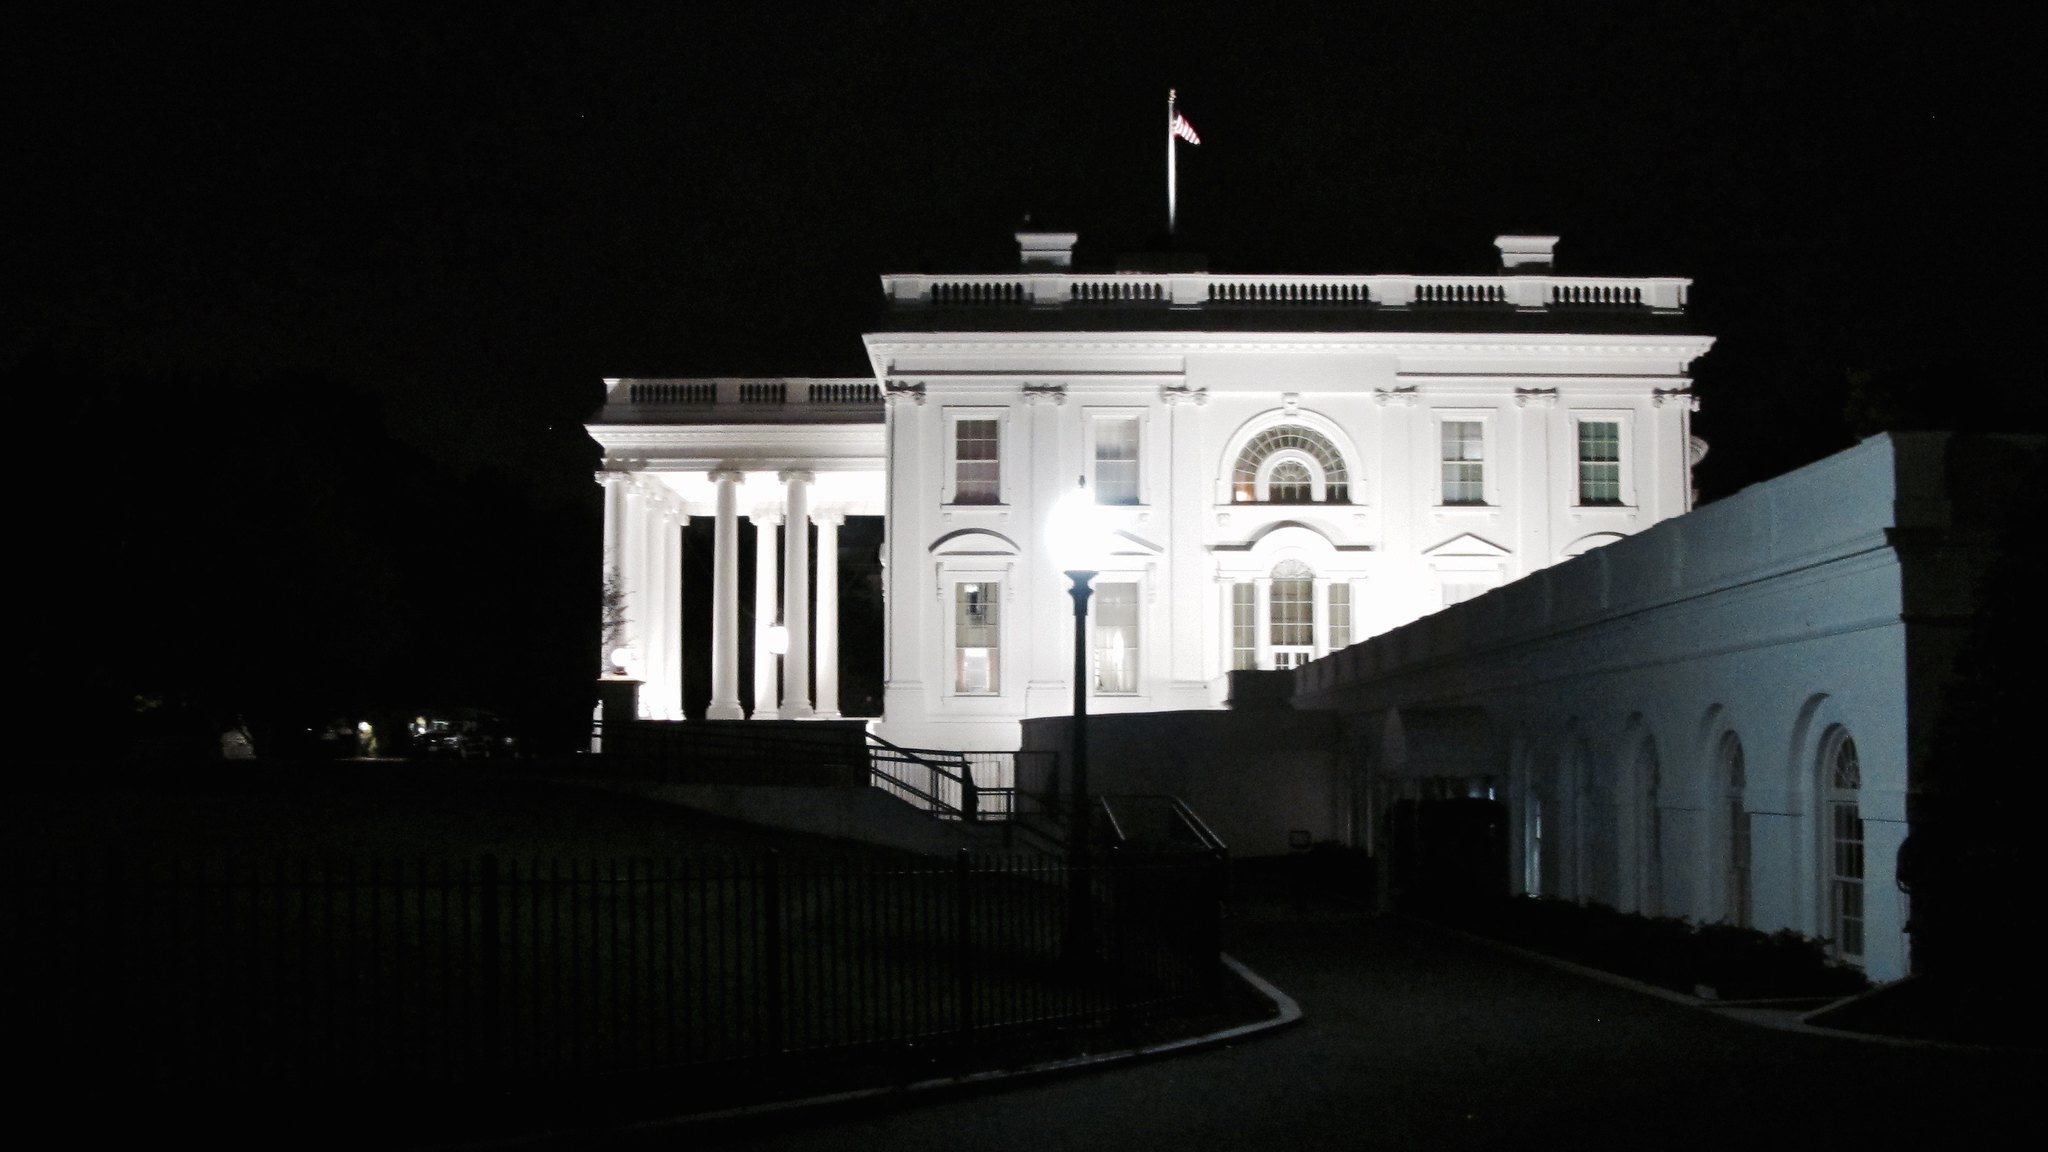 The White House from outside the West Wing.